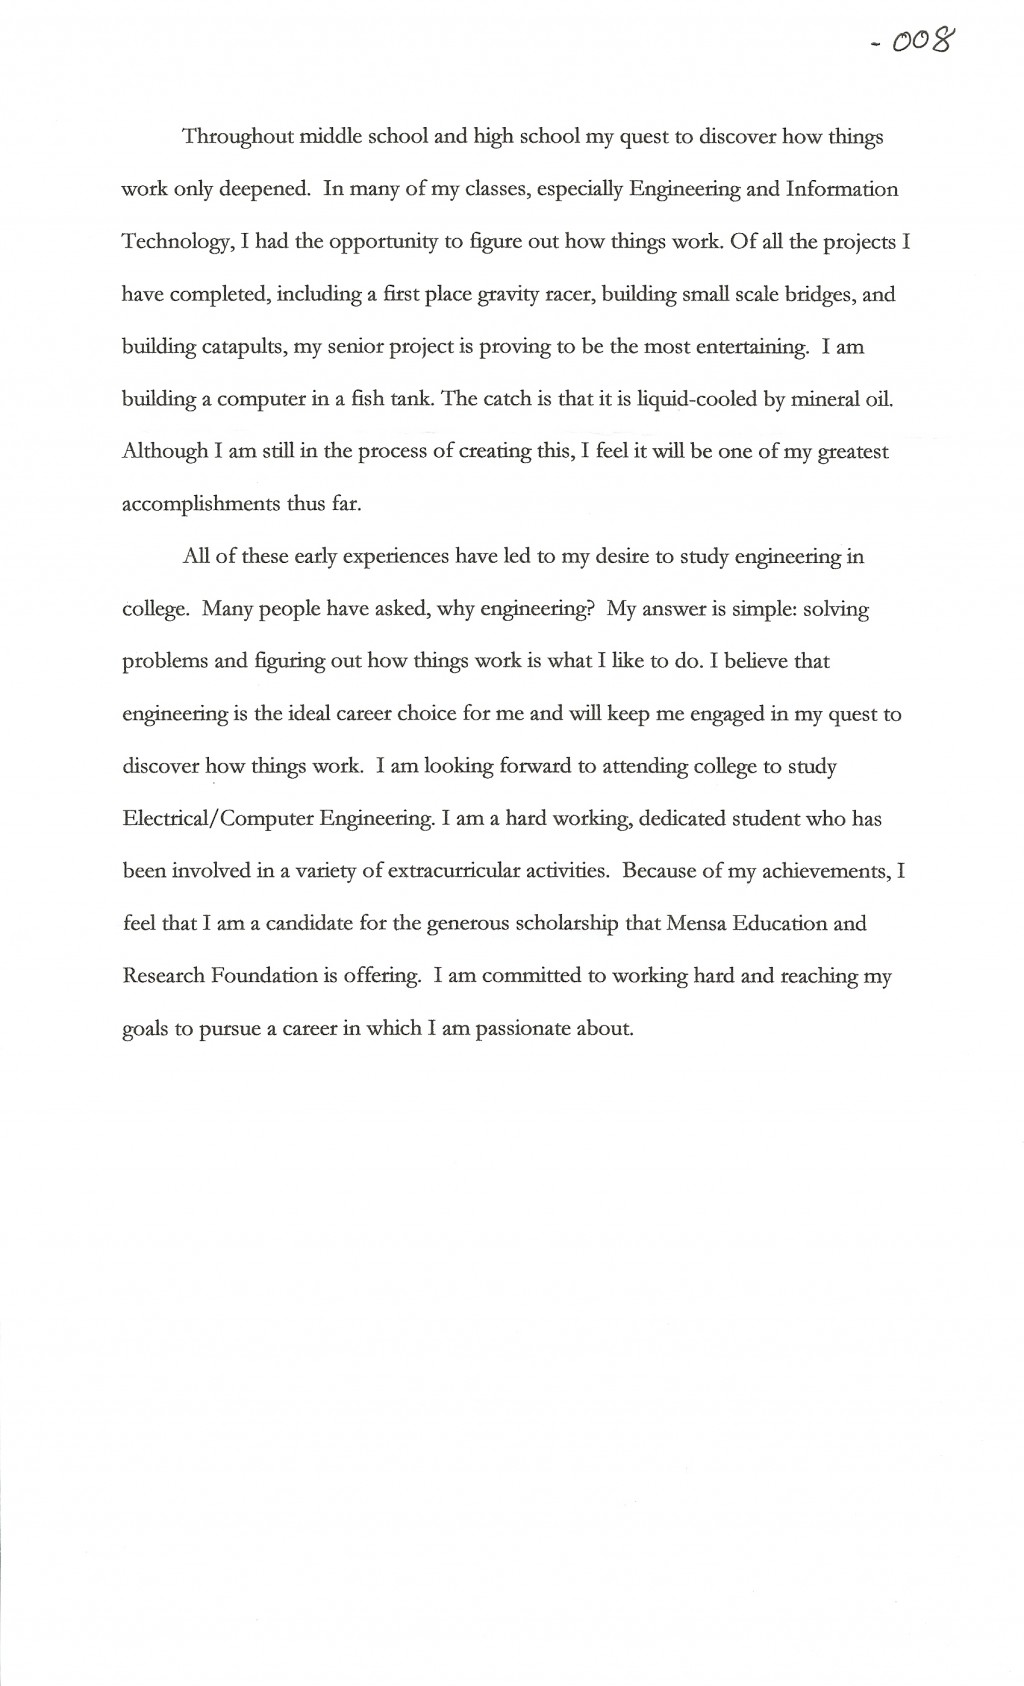 001 Career Goals Essay Example Joshua Cate Fantastic Business Examples Scholarship Pdf Large